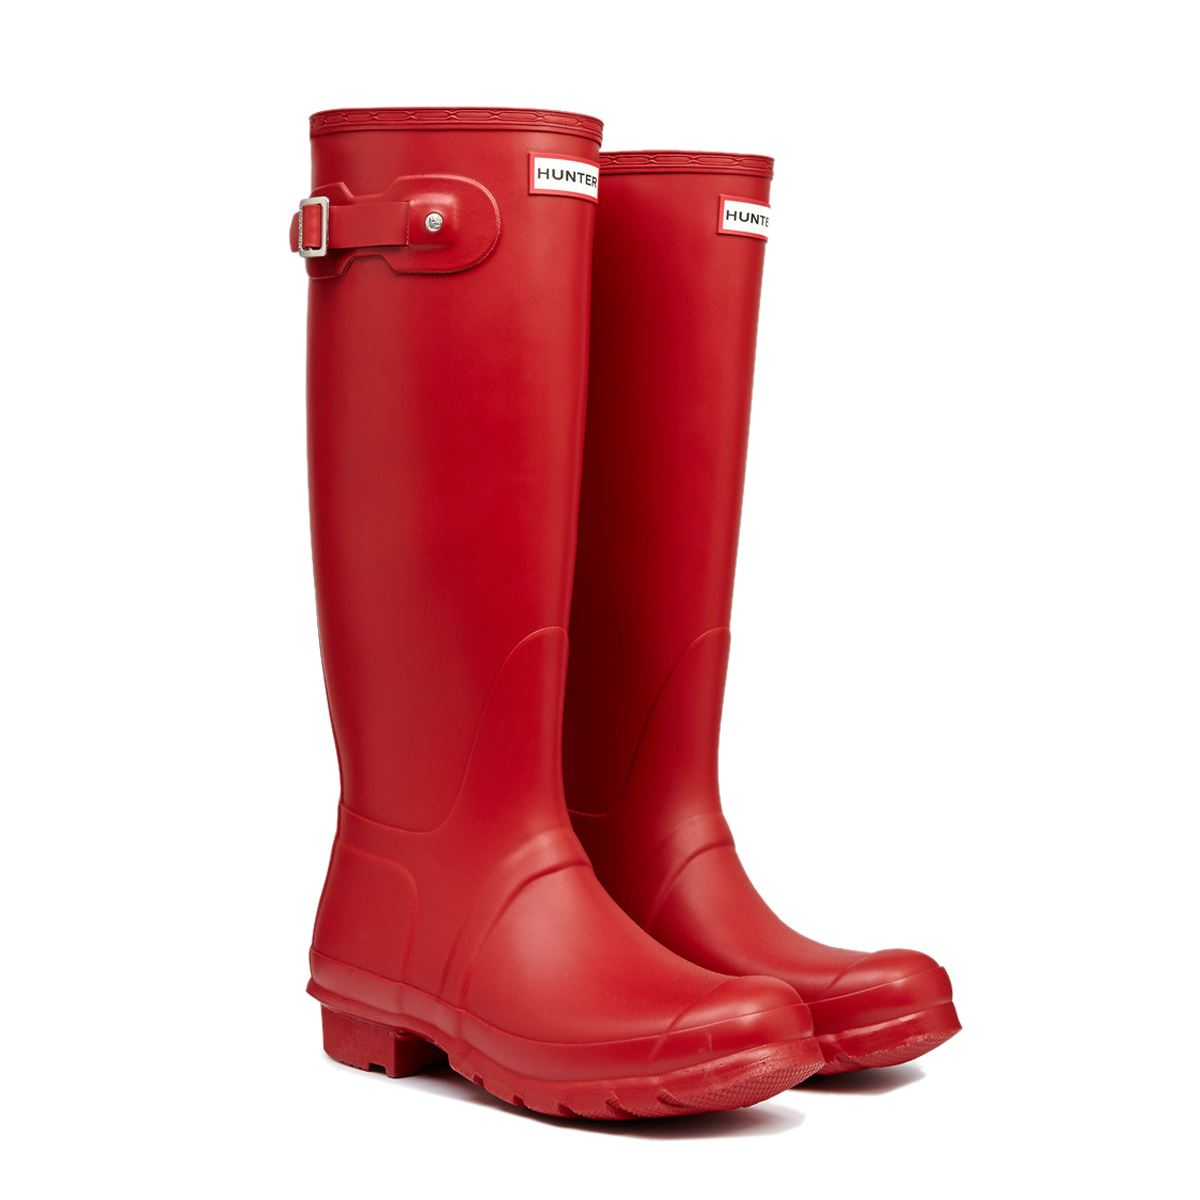 Model Women39s Premier Tall Rain Boots Product Details Page